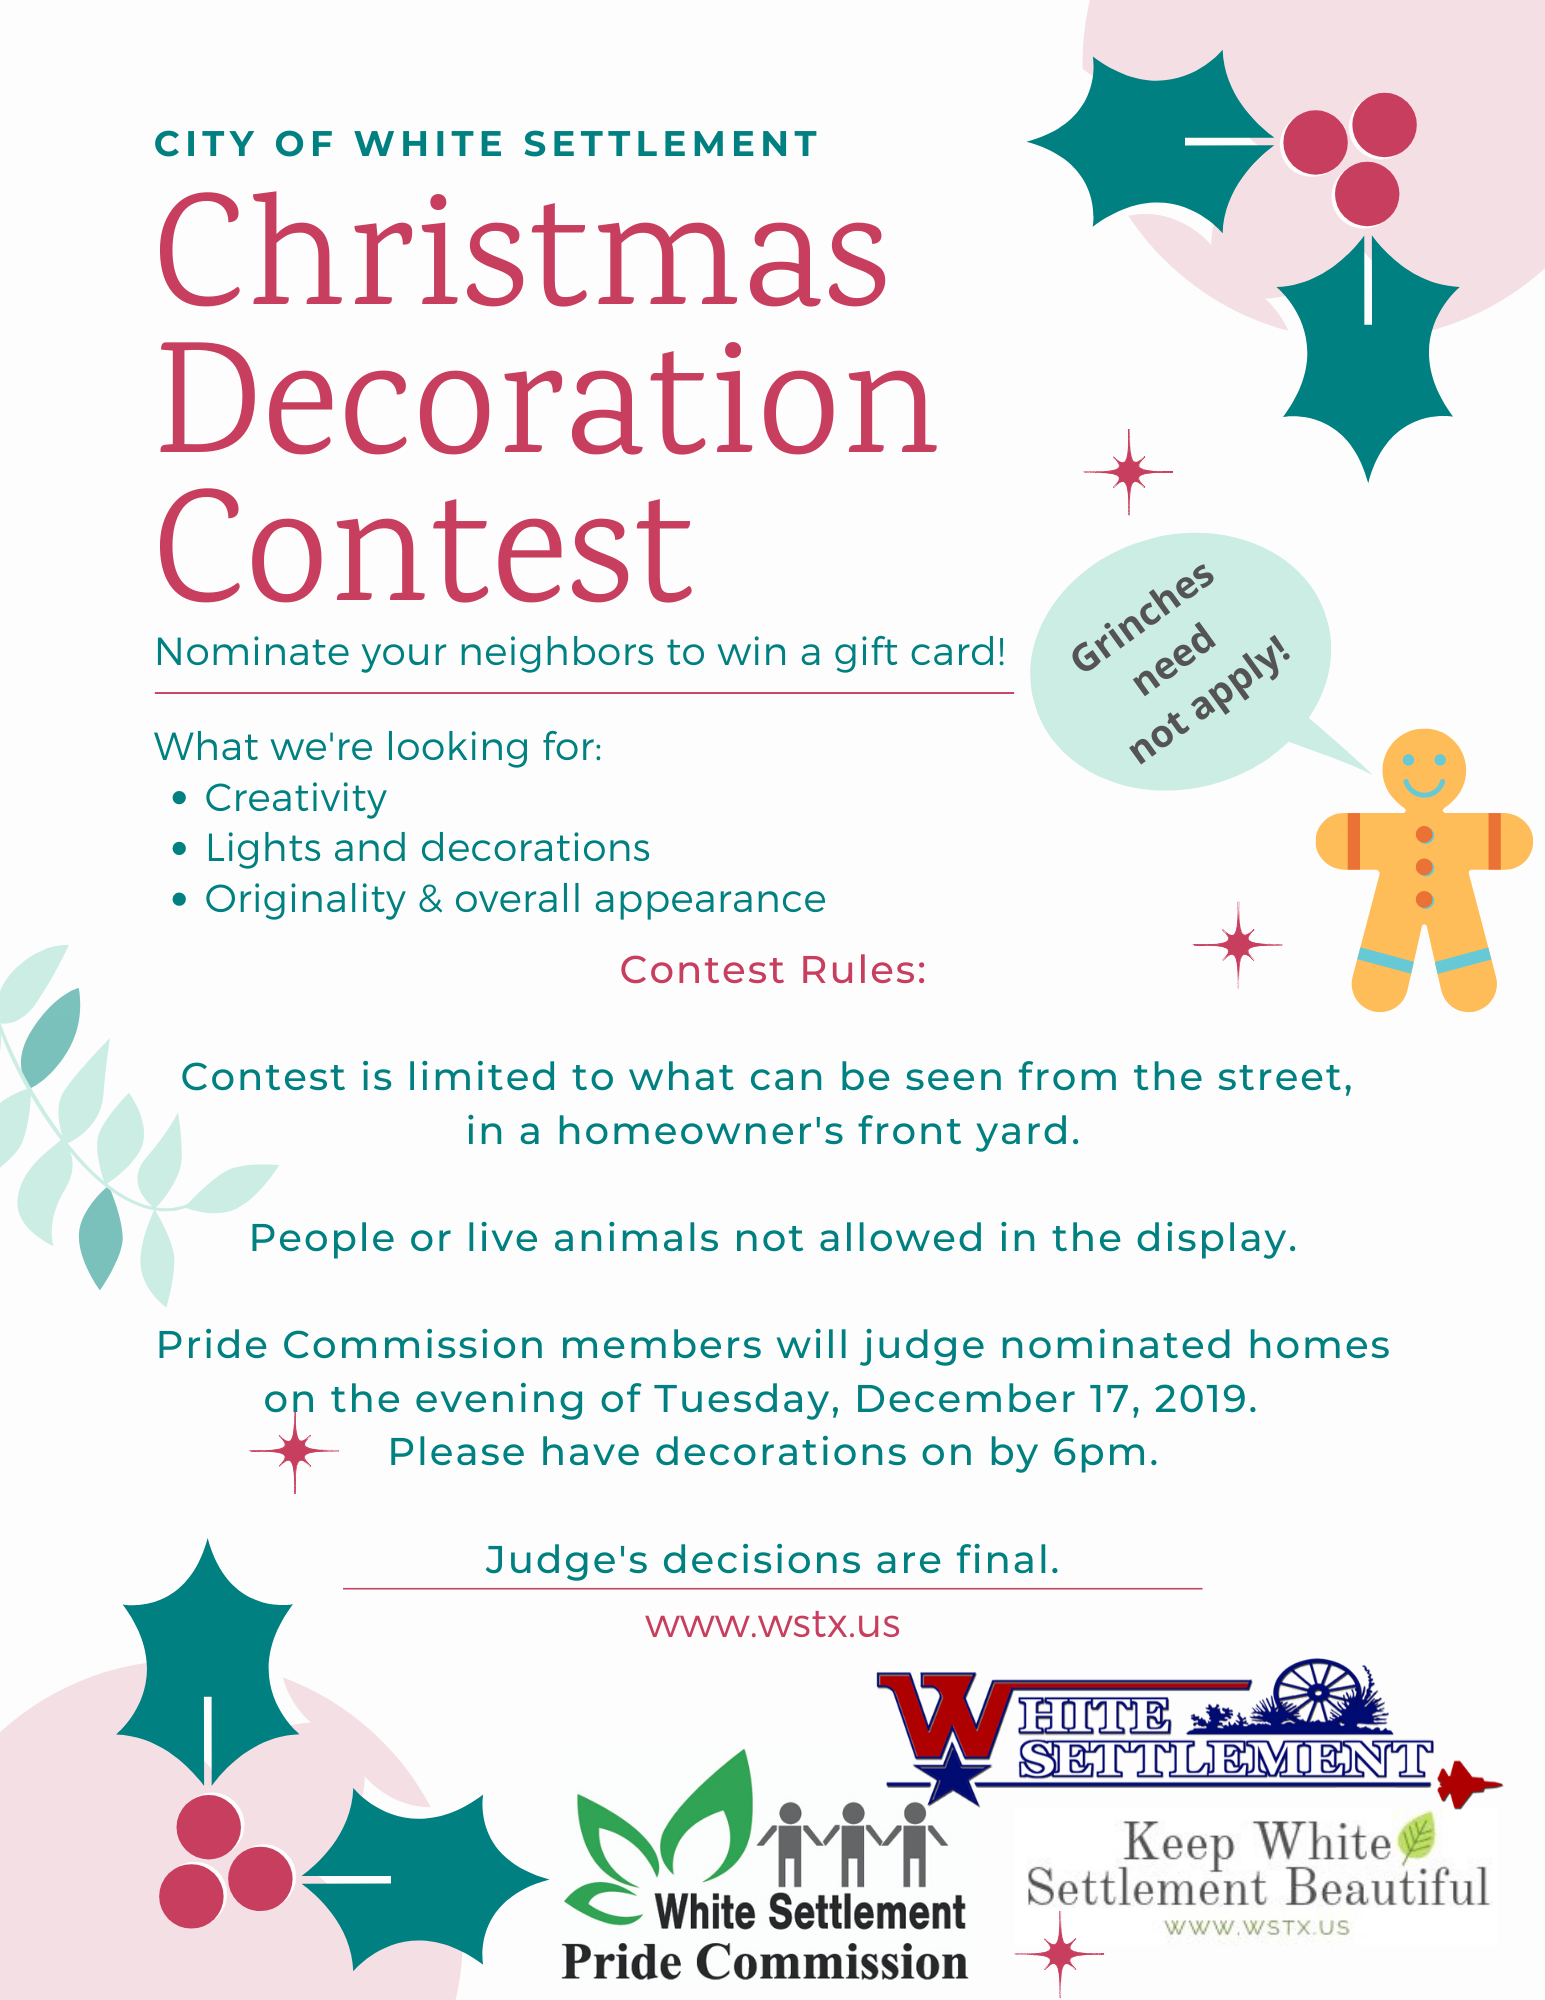 holiday images announcing a decorations contest